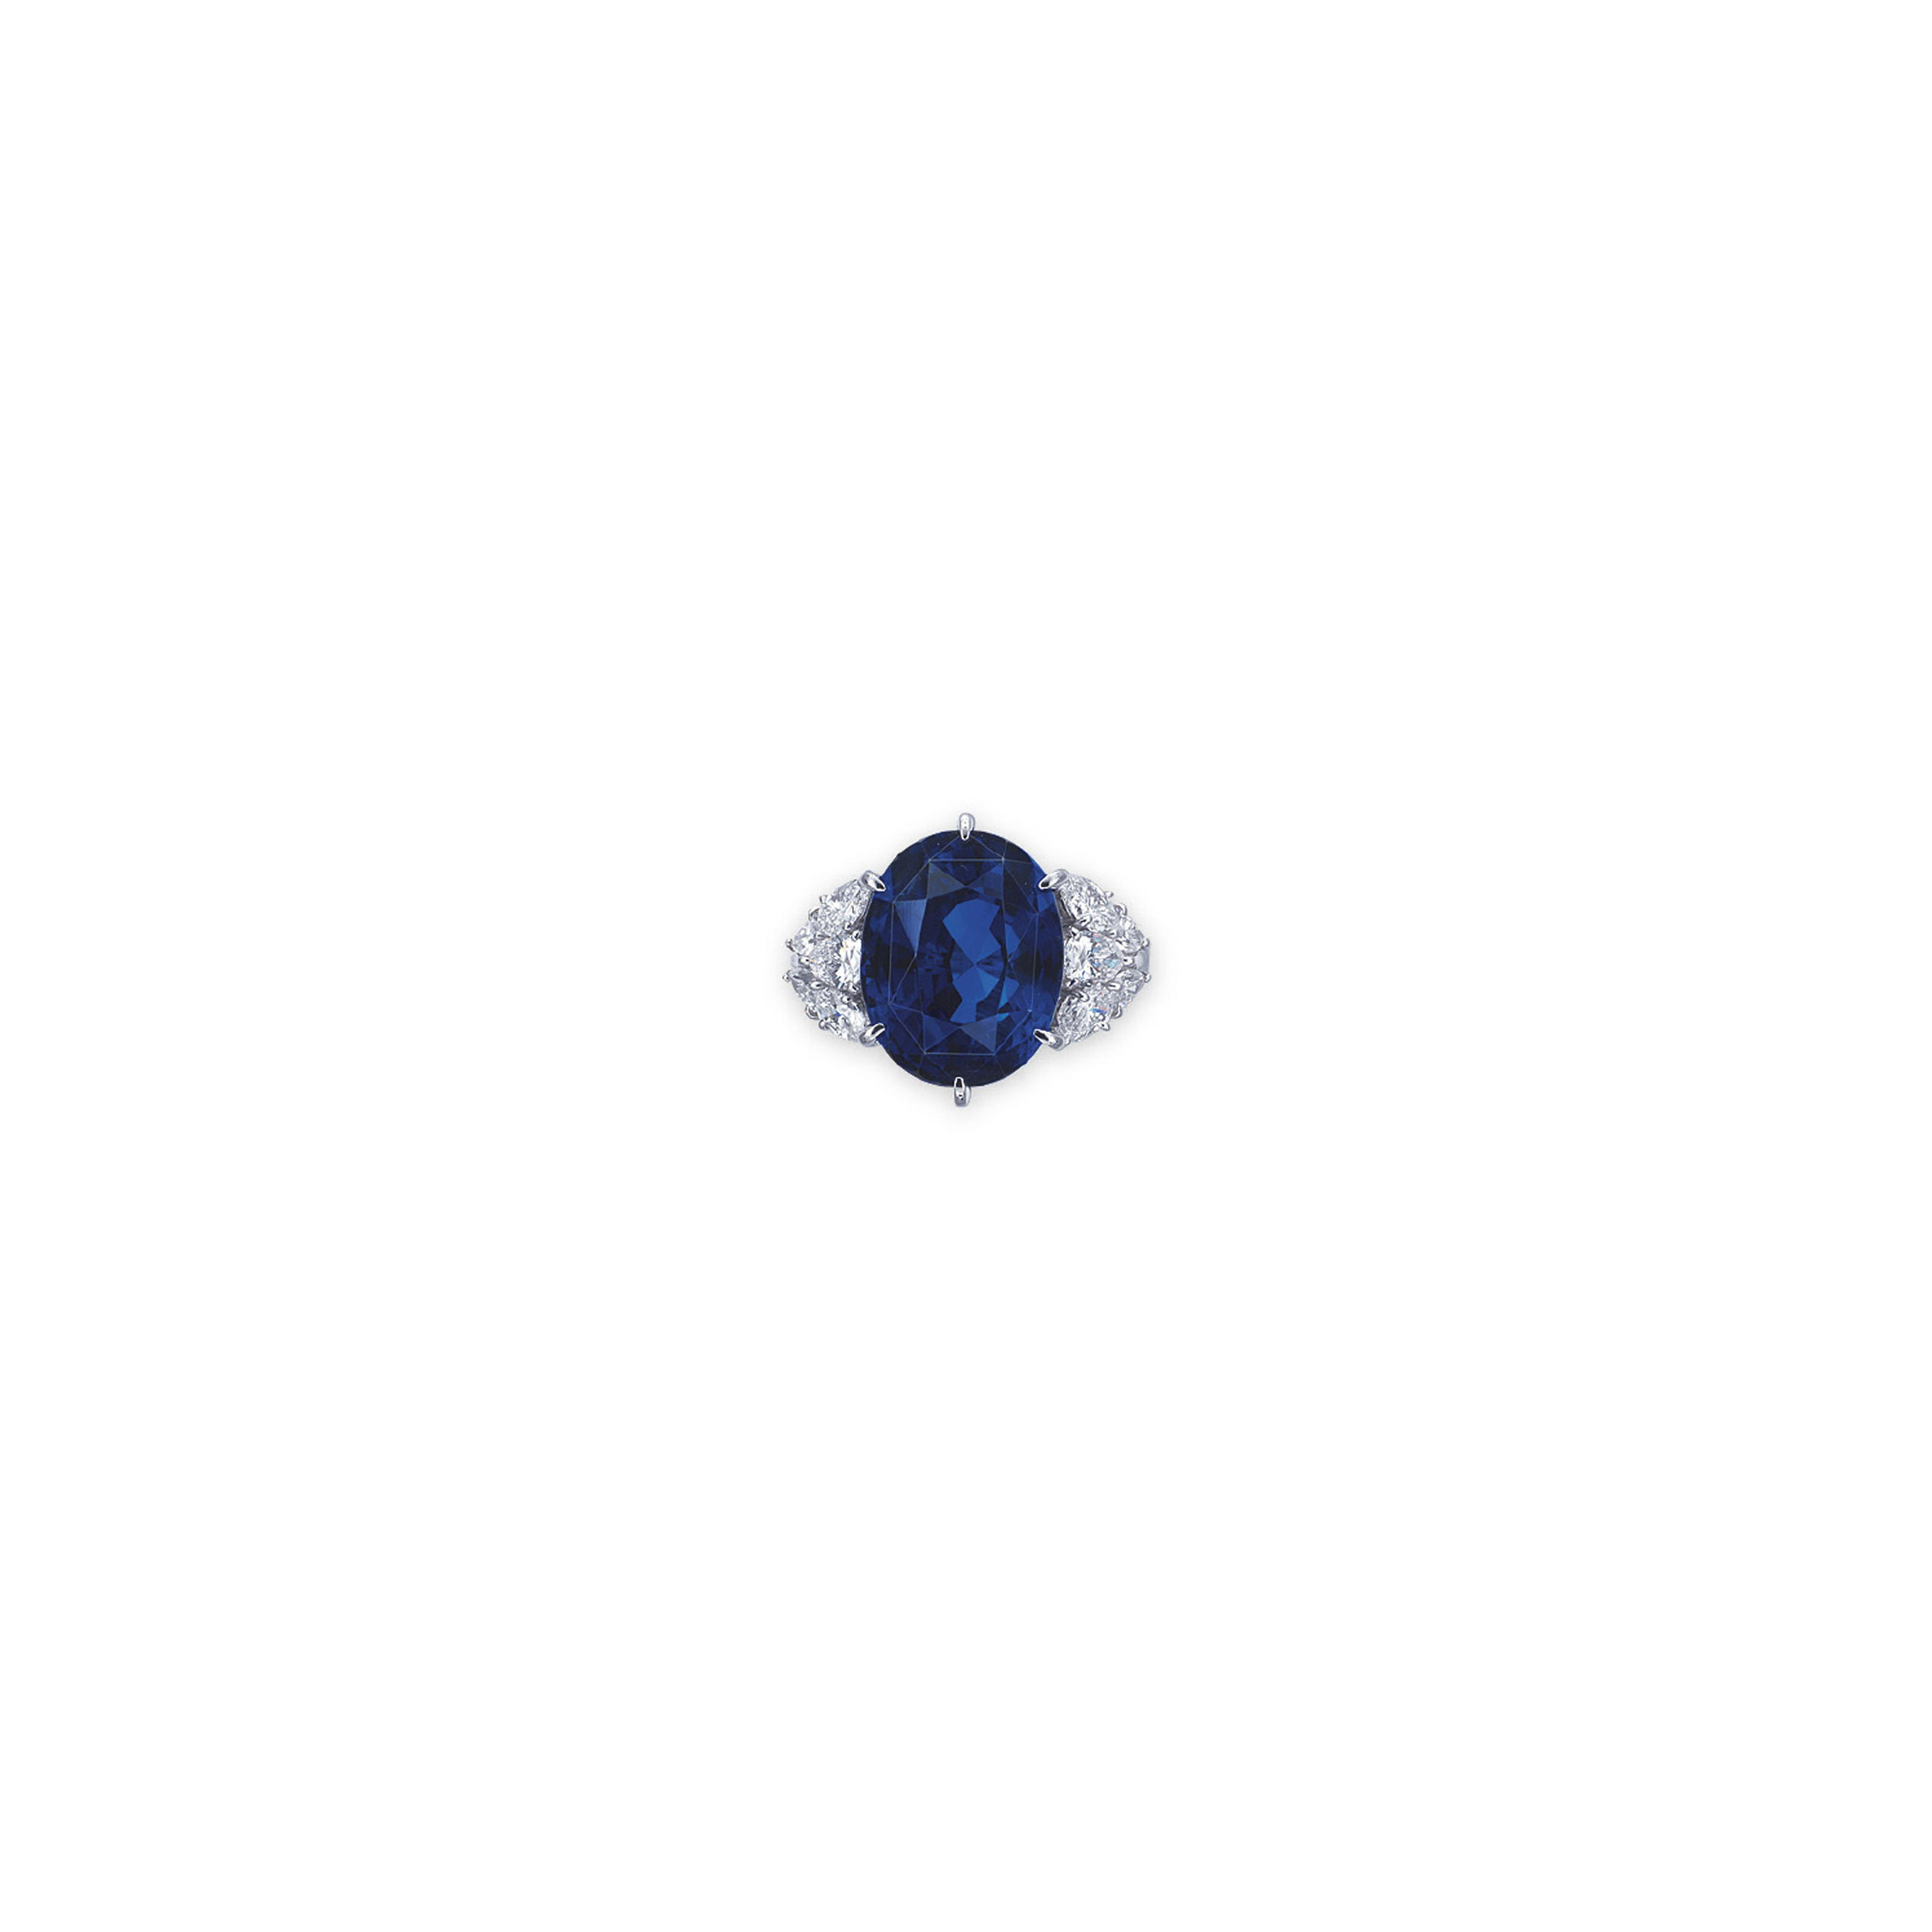 A SAPPHIRE AND DIAMOND RING, BY MIKIMOTO